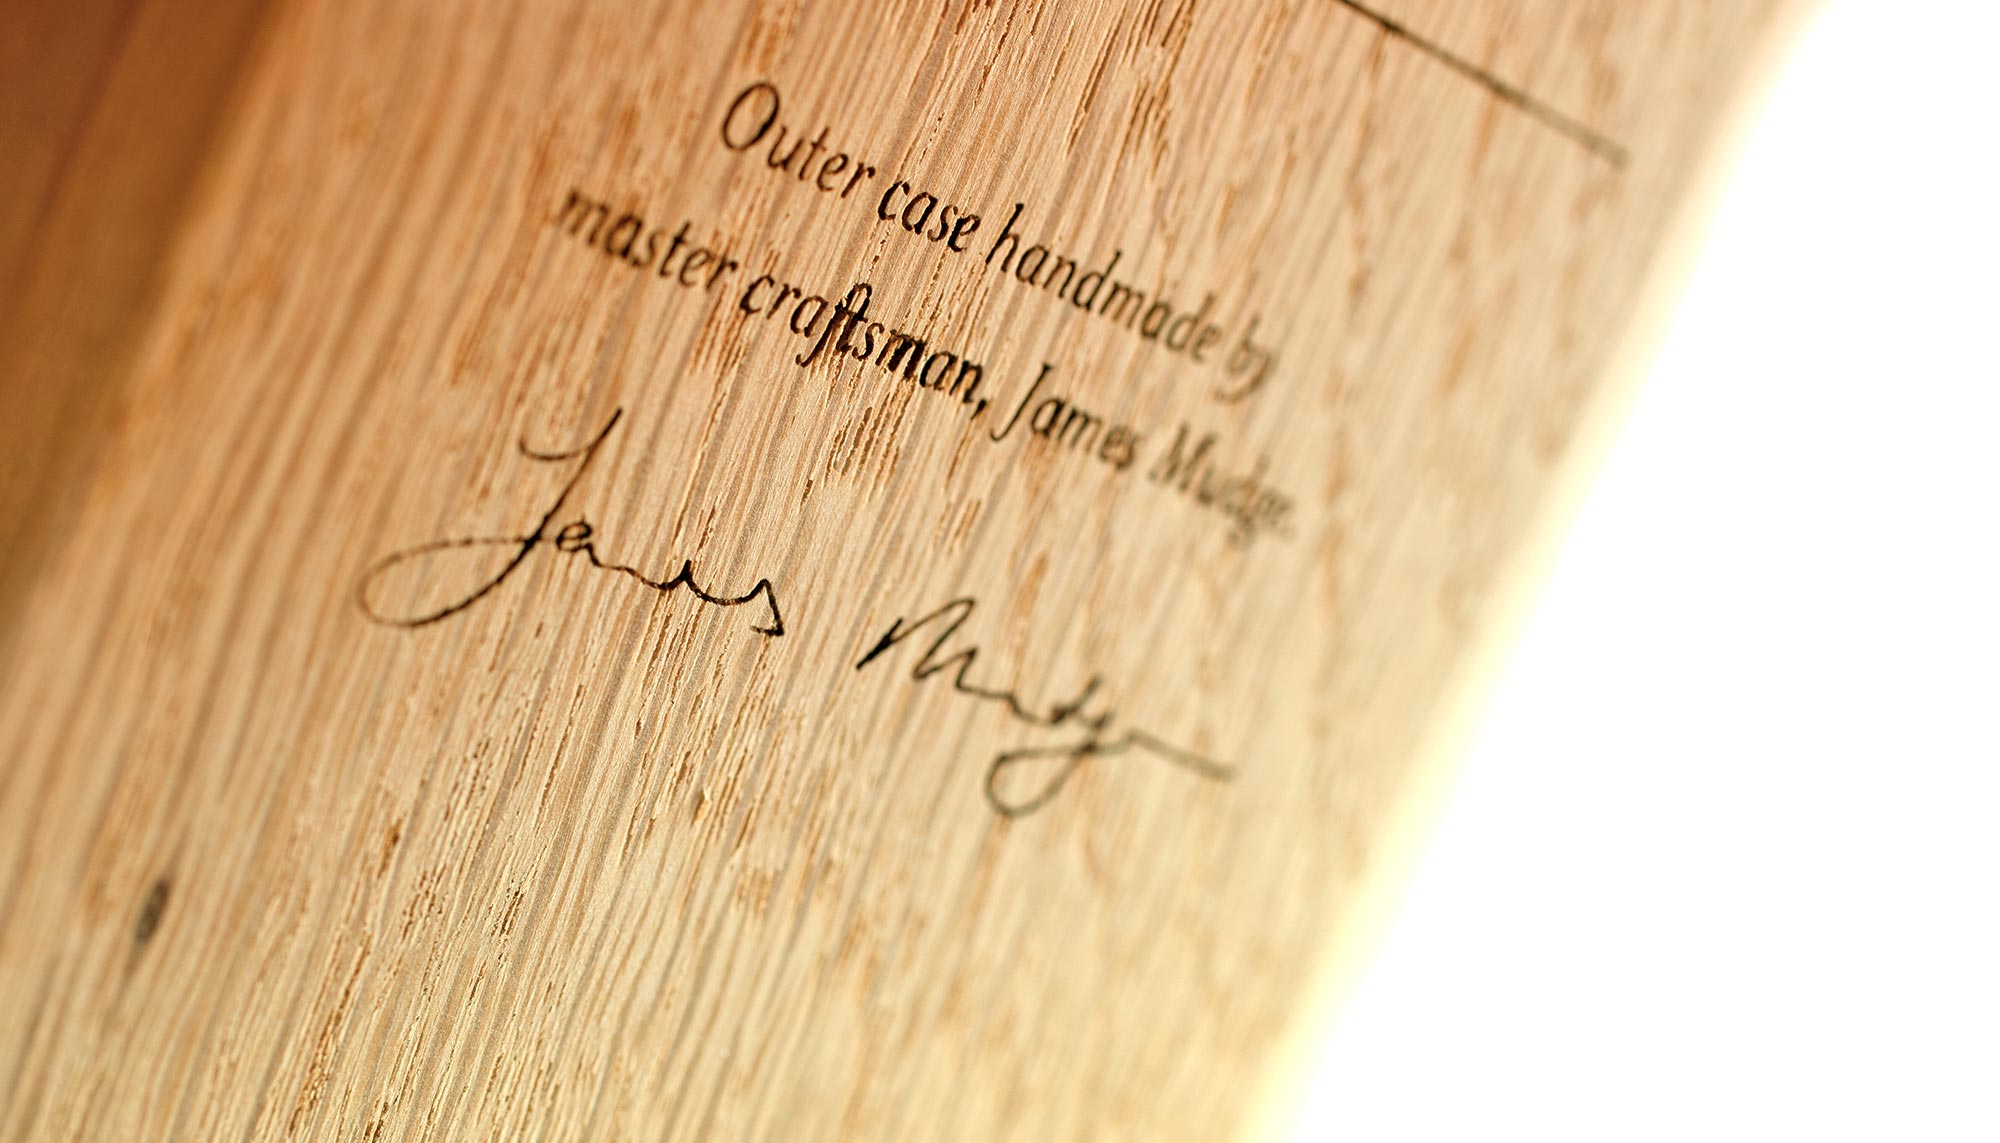 Close up of James's signature